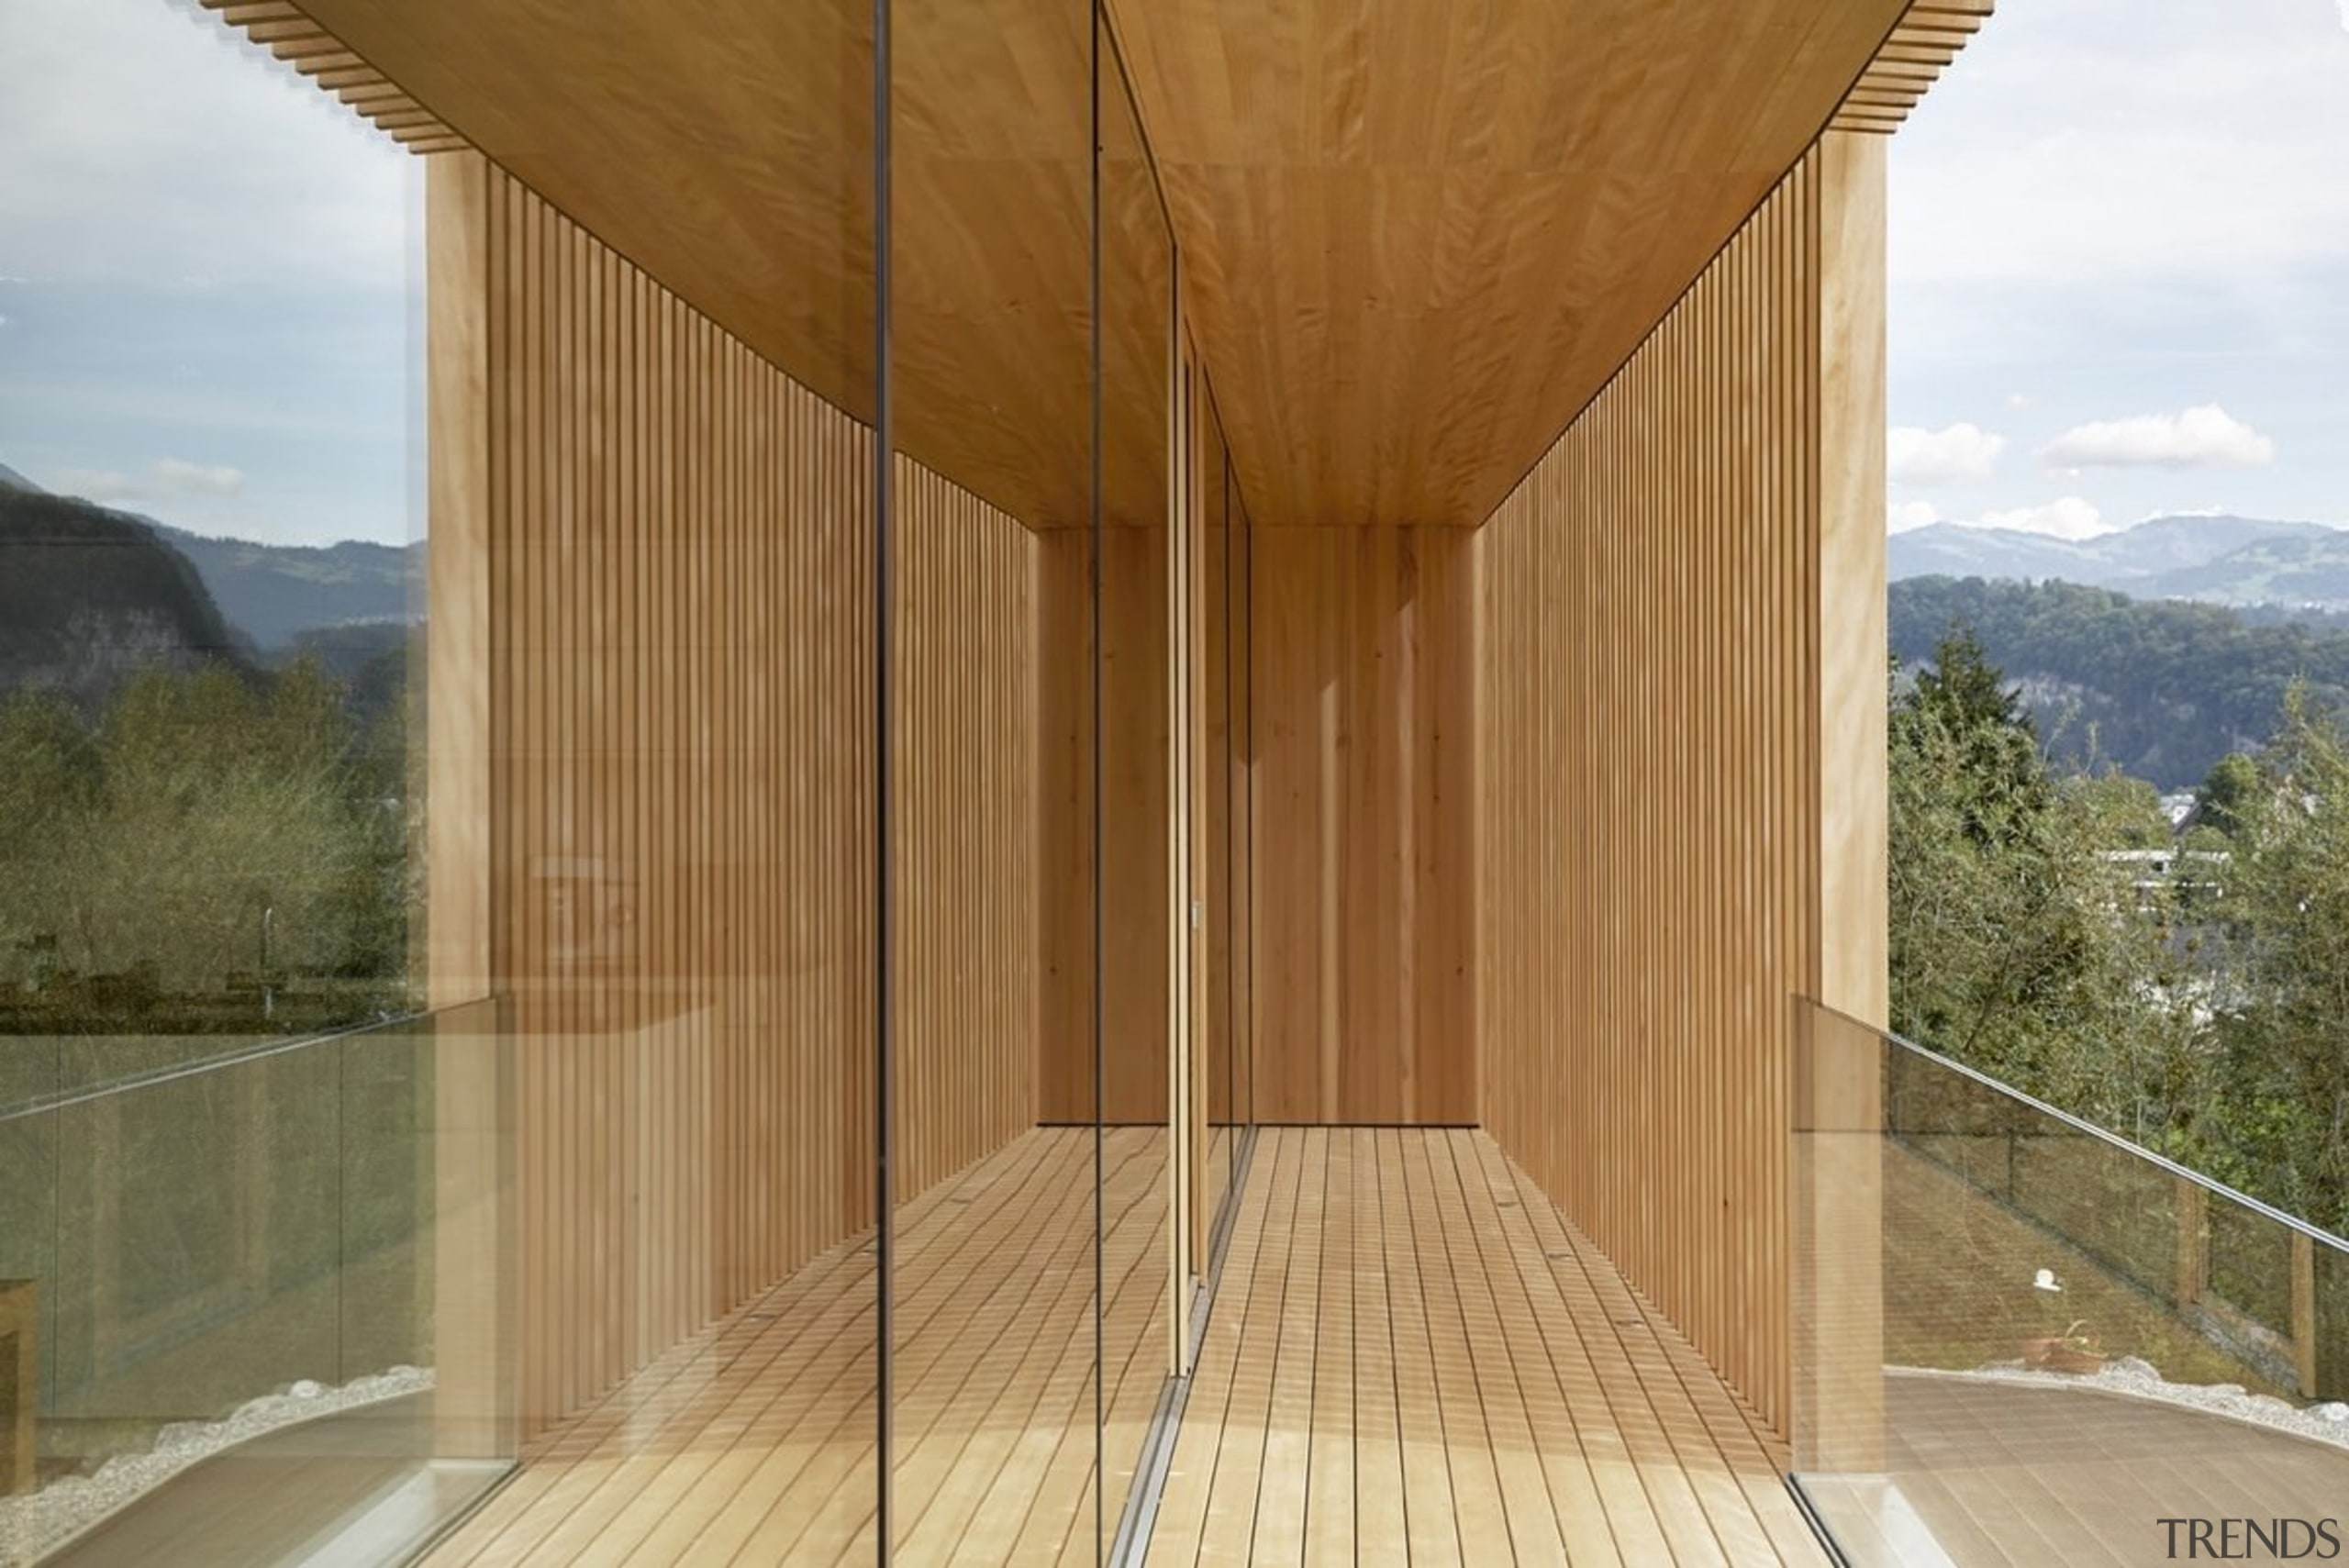 Architect: Helena Weber architectsPhotography by Adolf Bereuter architecture, facade, house, property, real estate, wood, brown